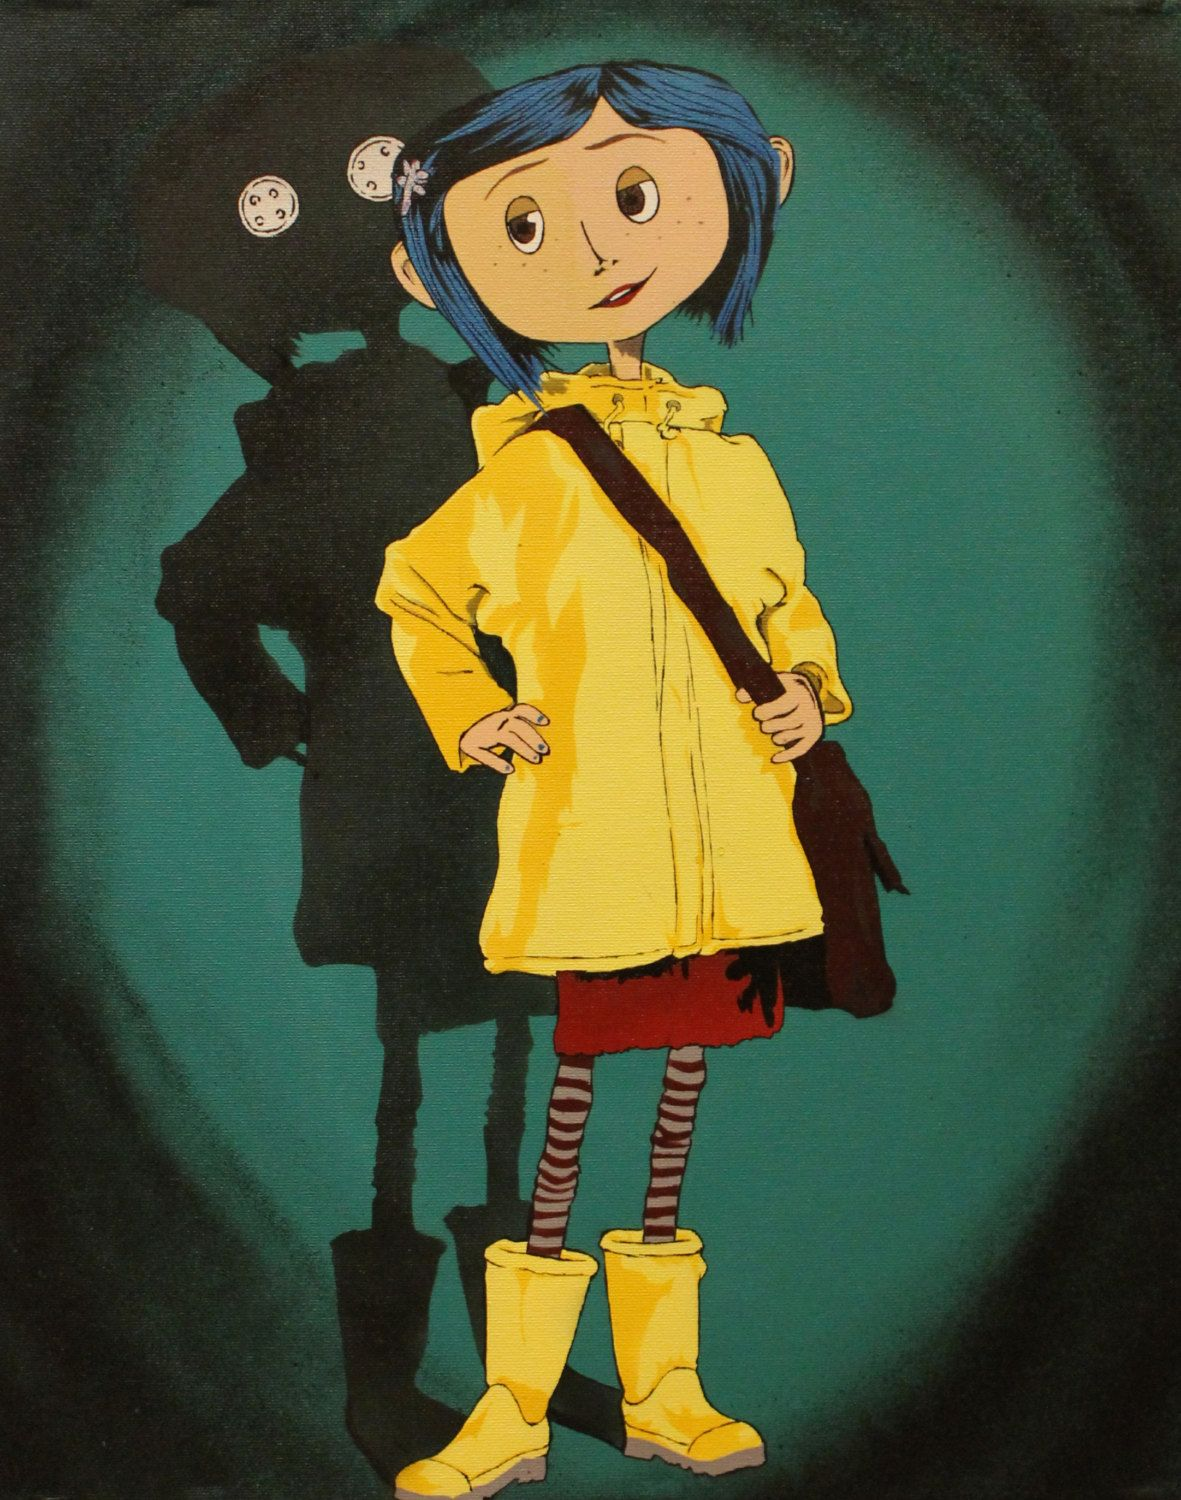 Coraline Print Coraline Art Coraline Jones Coraline Drawing